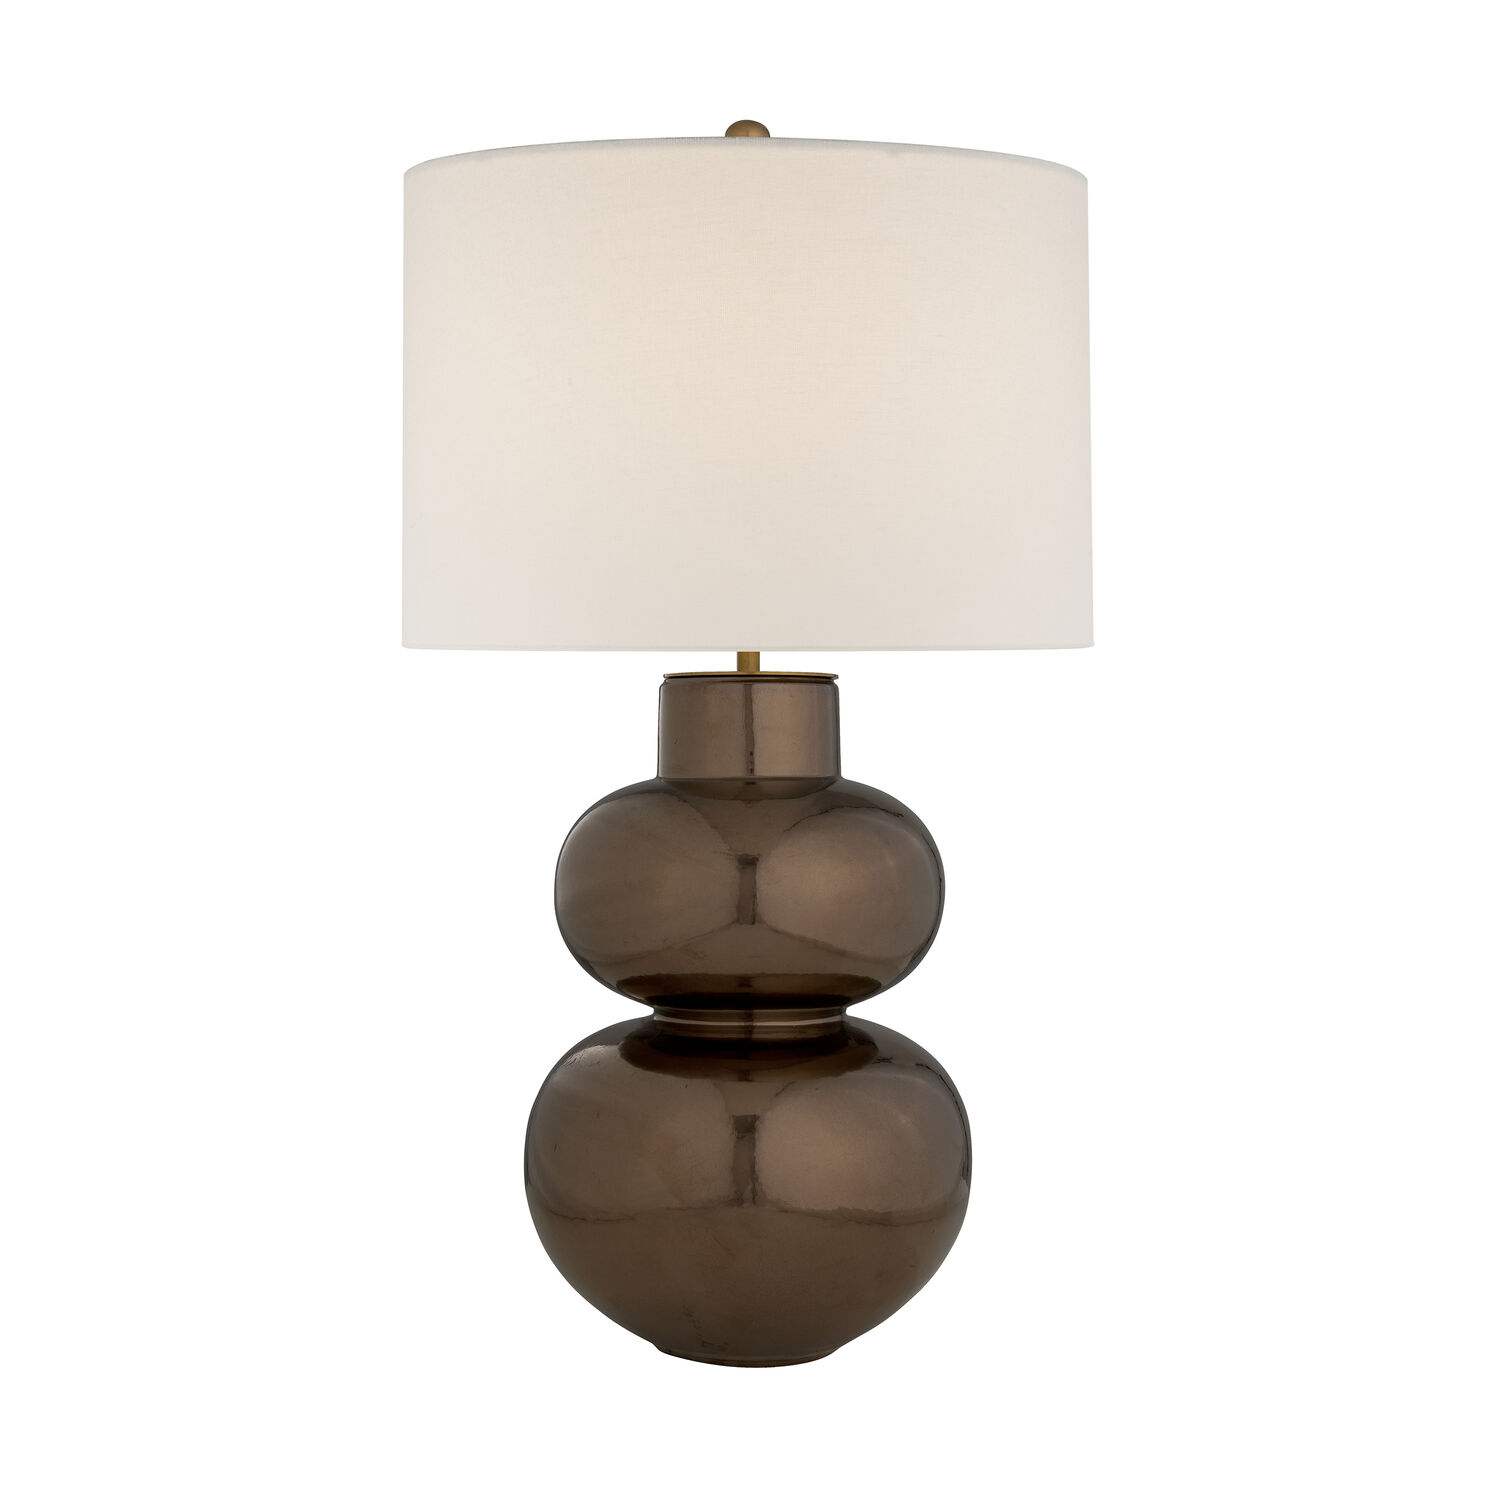 Merlat Table Lamp